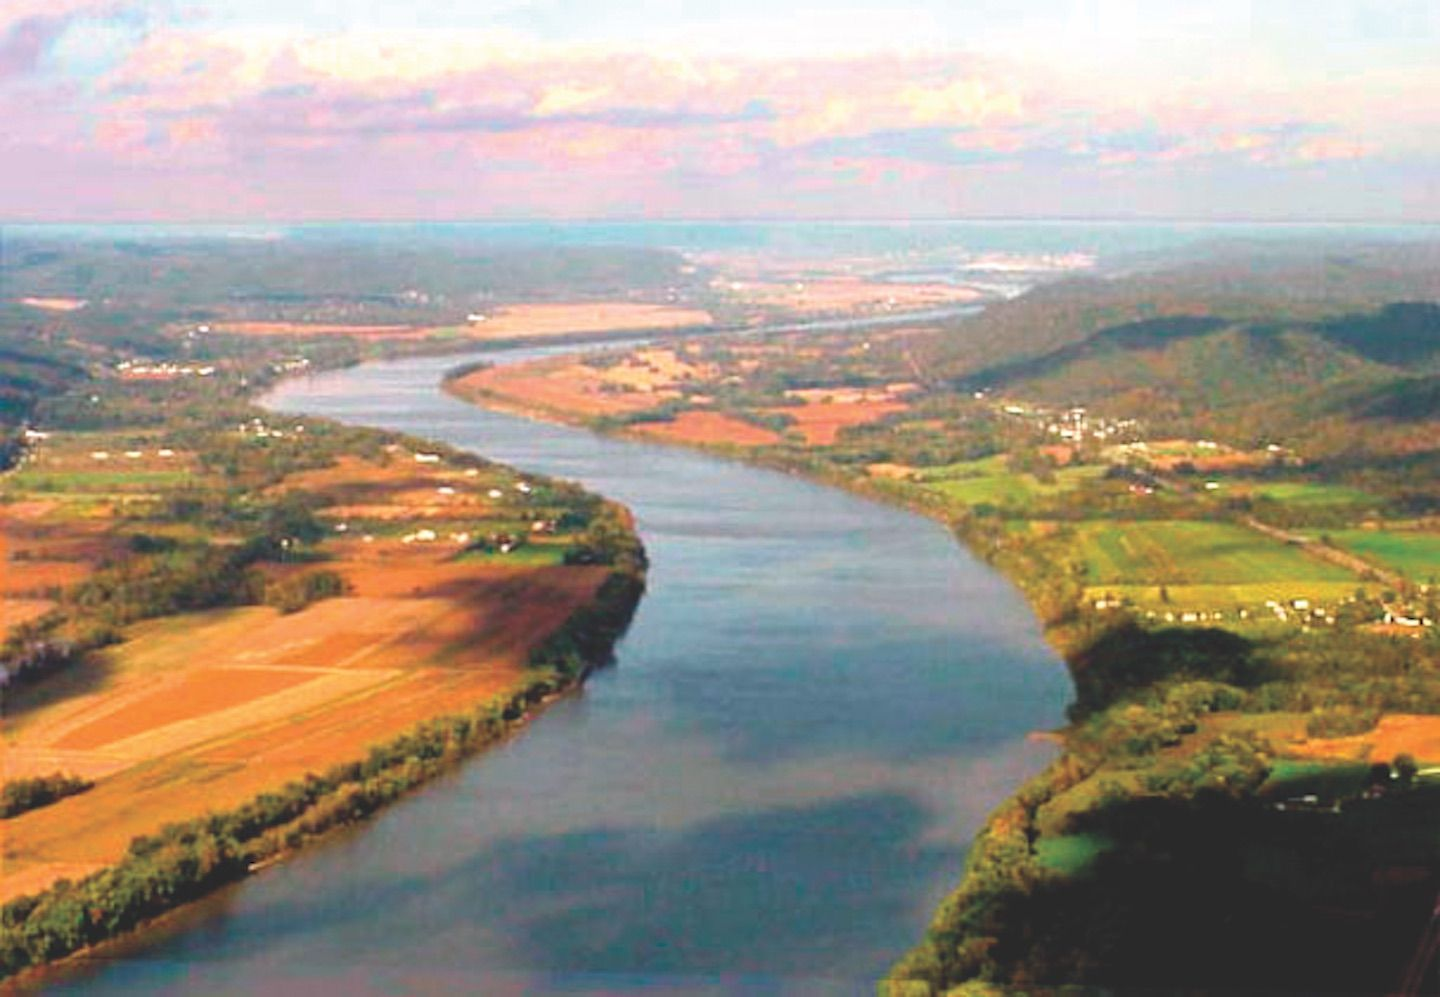 Aerial Photo of Ohio River